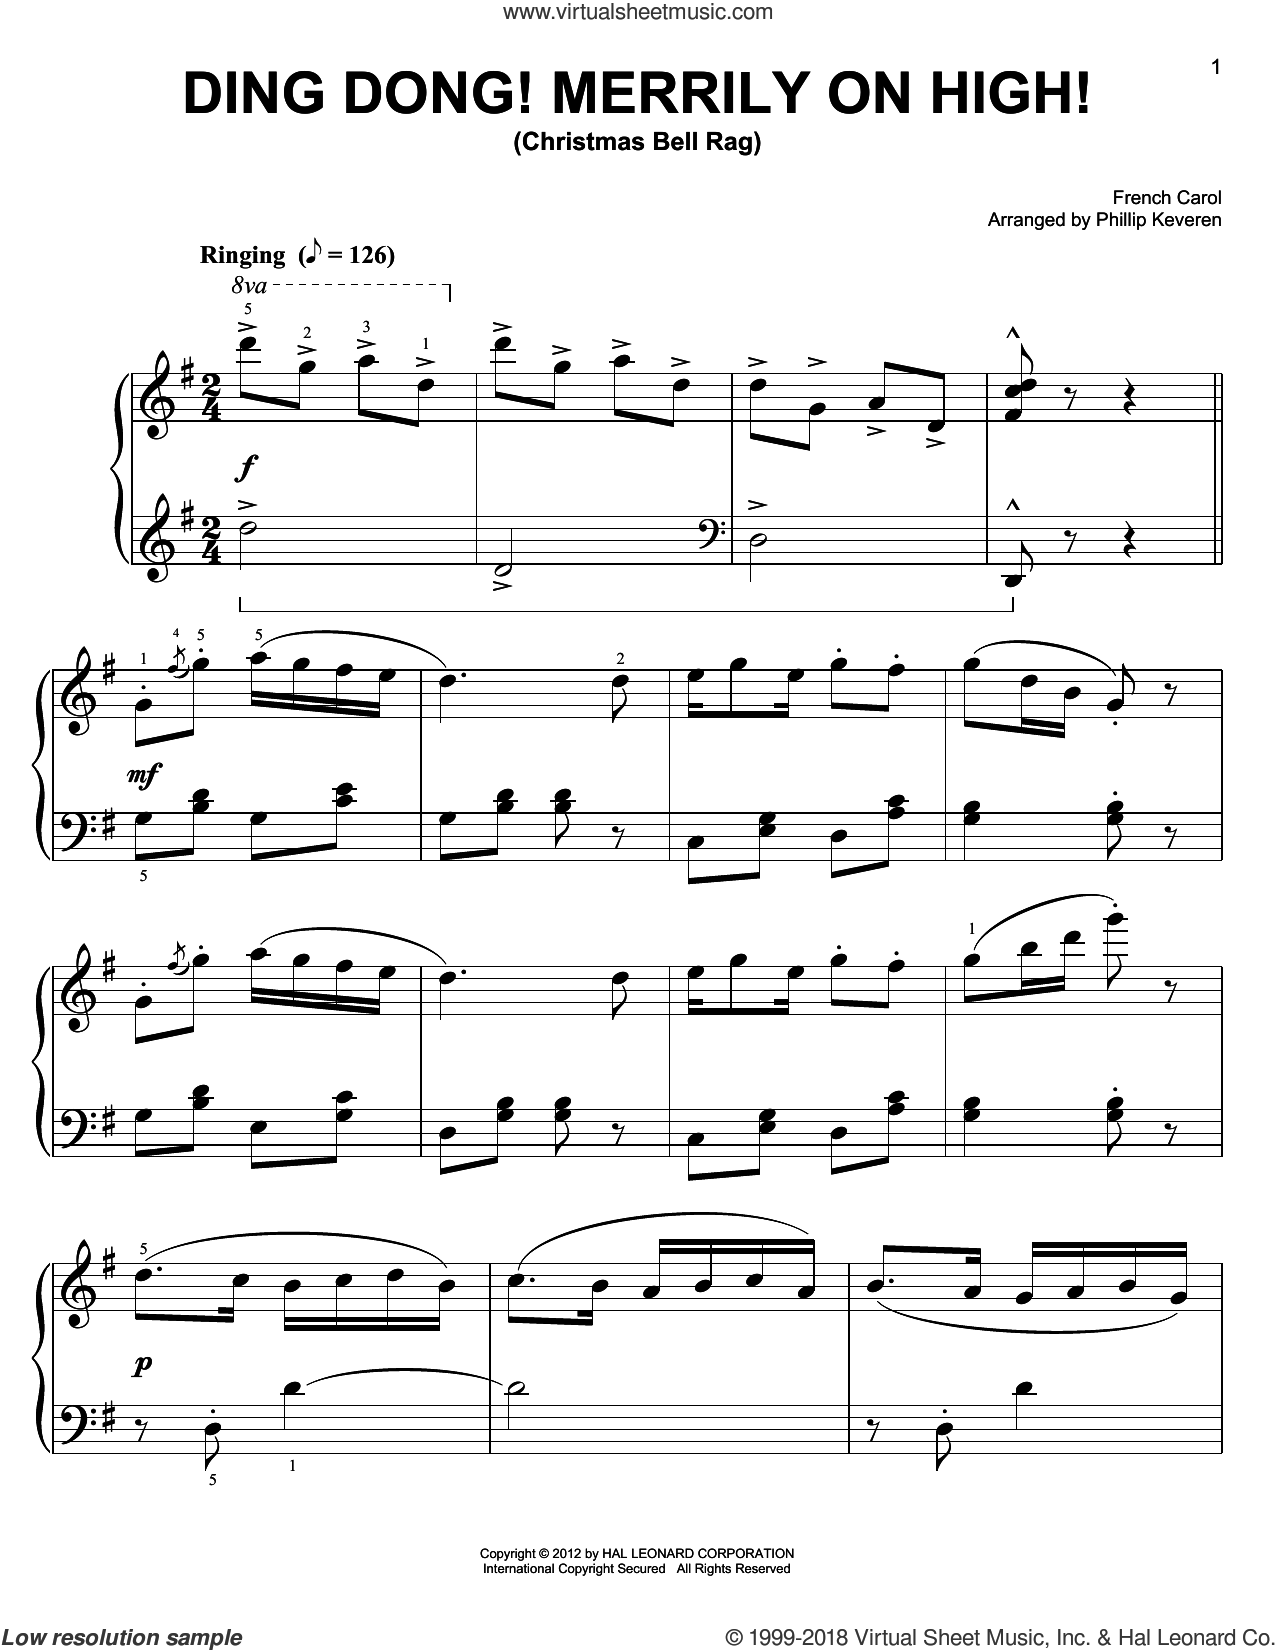 Ding Dong! Merrily On High! sheet music for piano solo by Phillip Keveren and Miscellaneous. Score Image Preview.